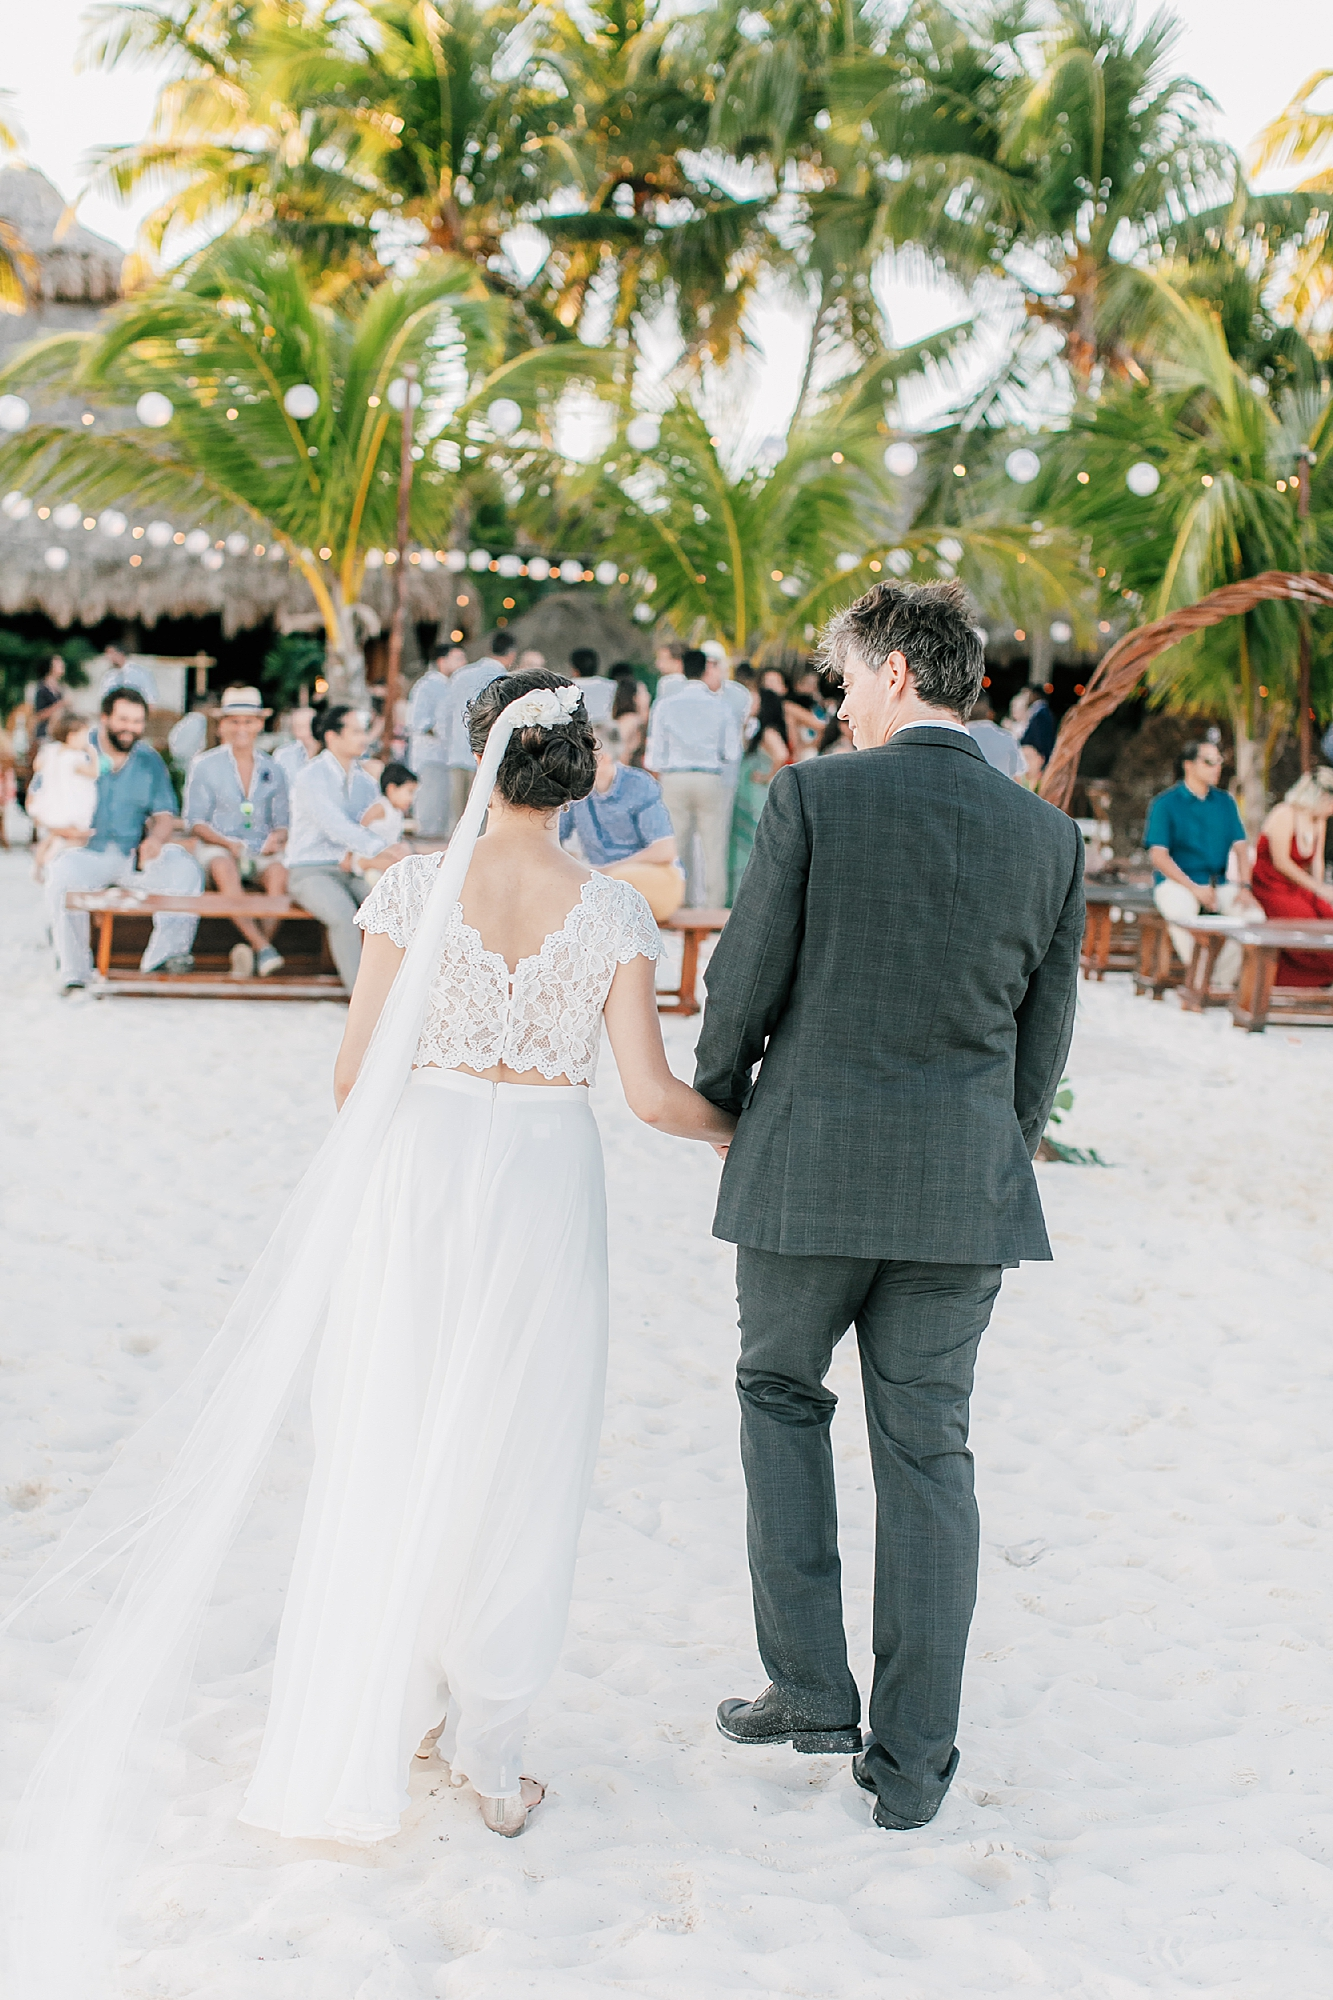 Stylish and Candid Destination Film Wedding Photography in Tulum Mexico by Magdalena Studios 0027